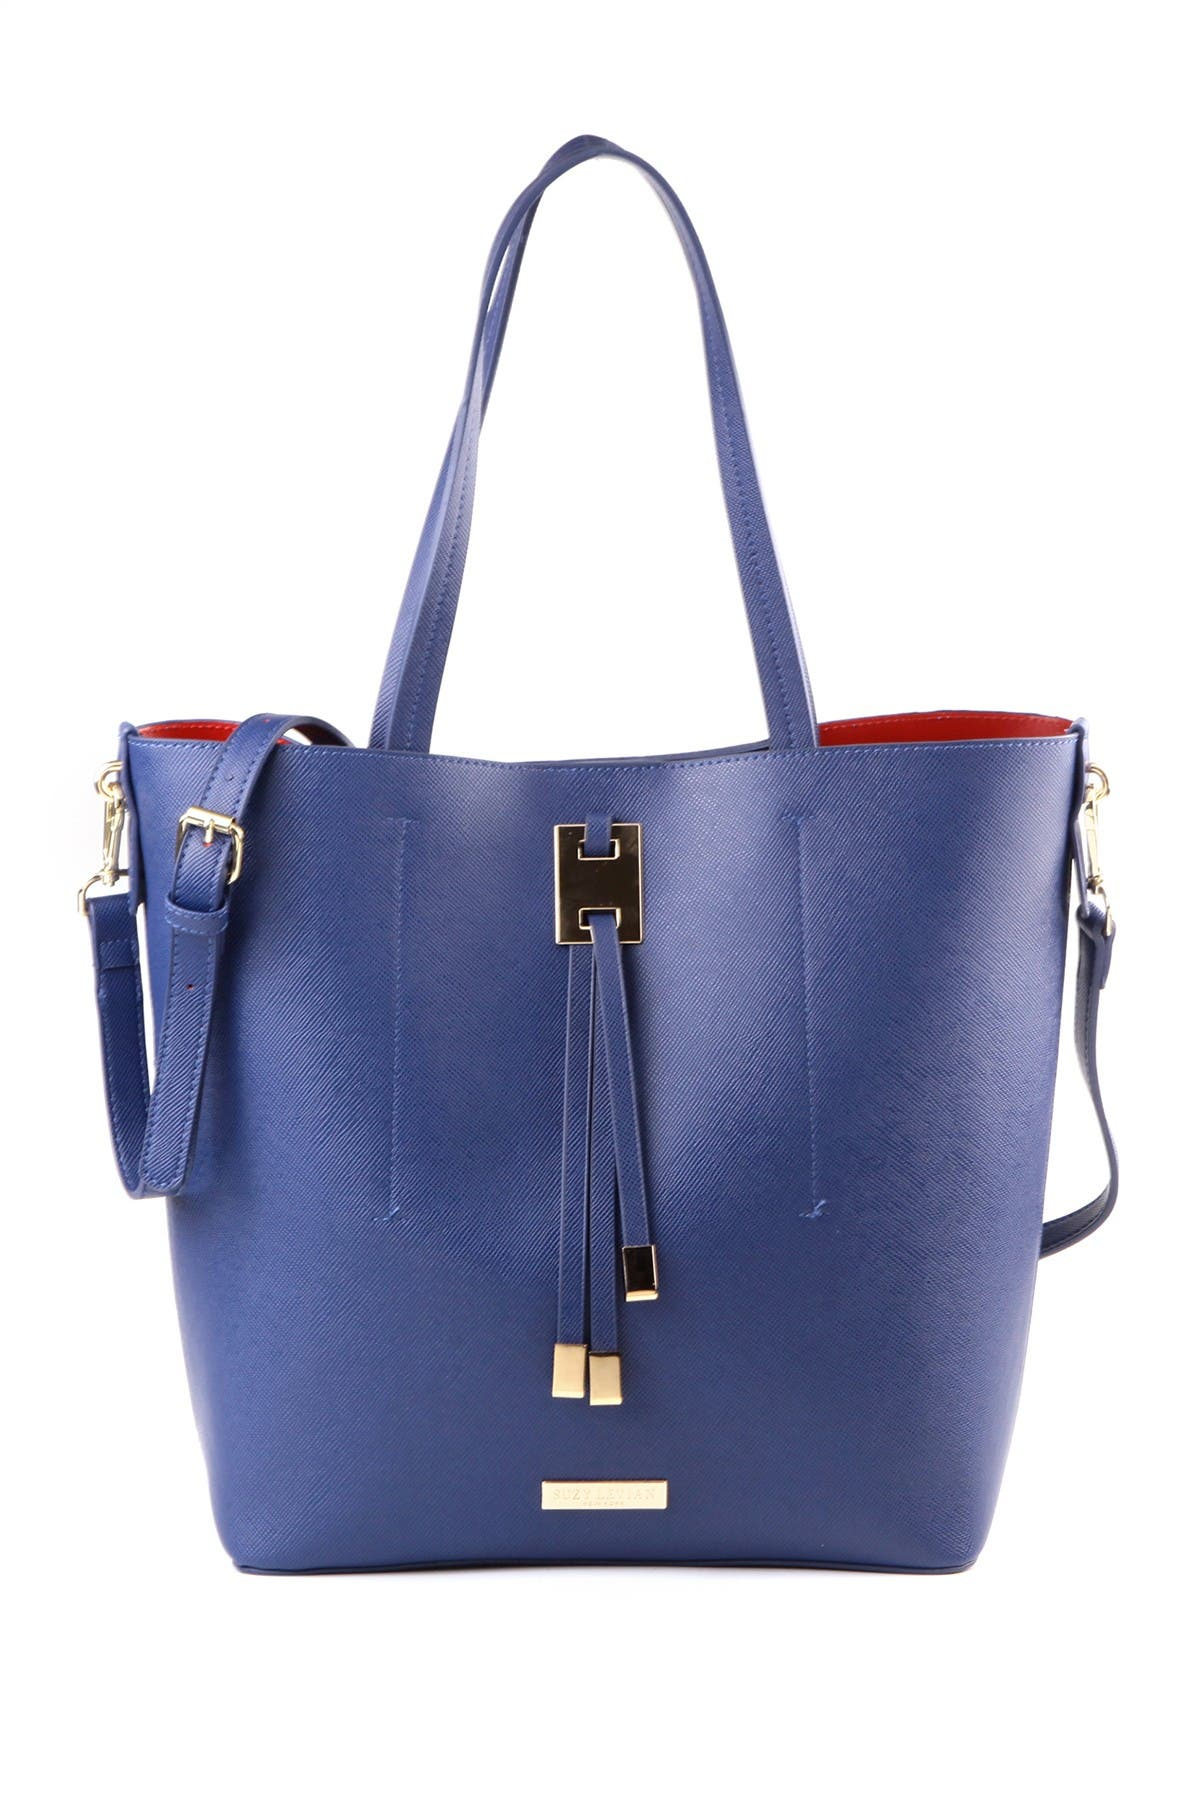 Image of Suzy Levian Saffiano Faux Leather Tall Tote Bag